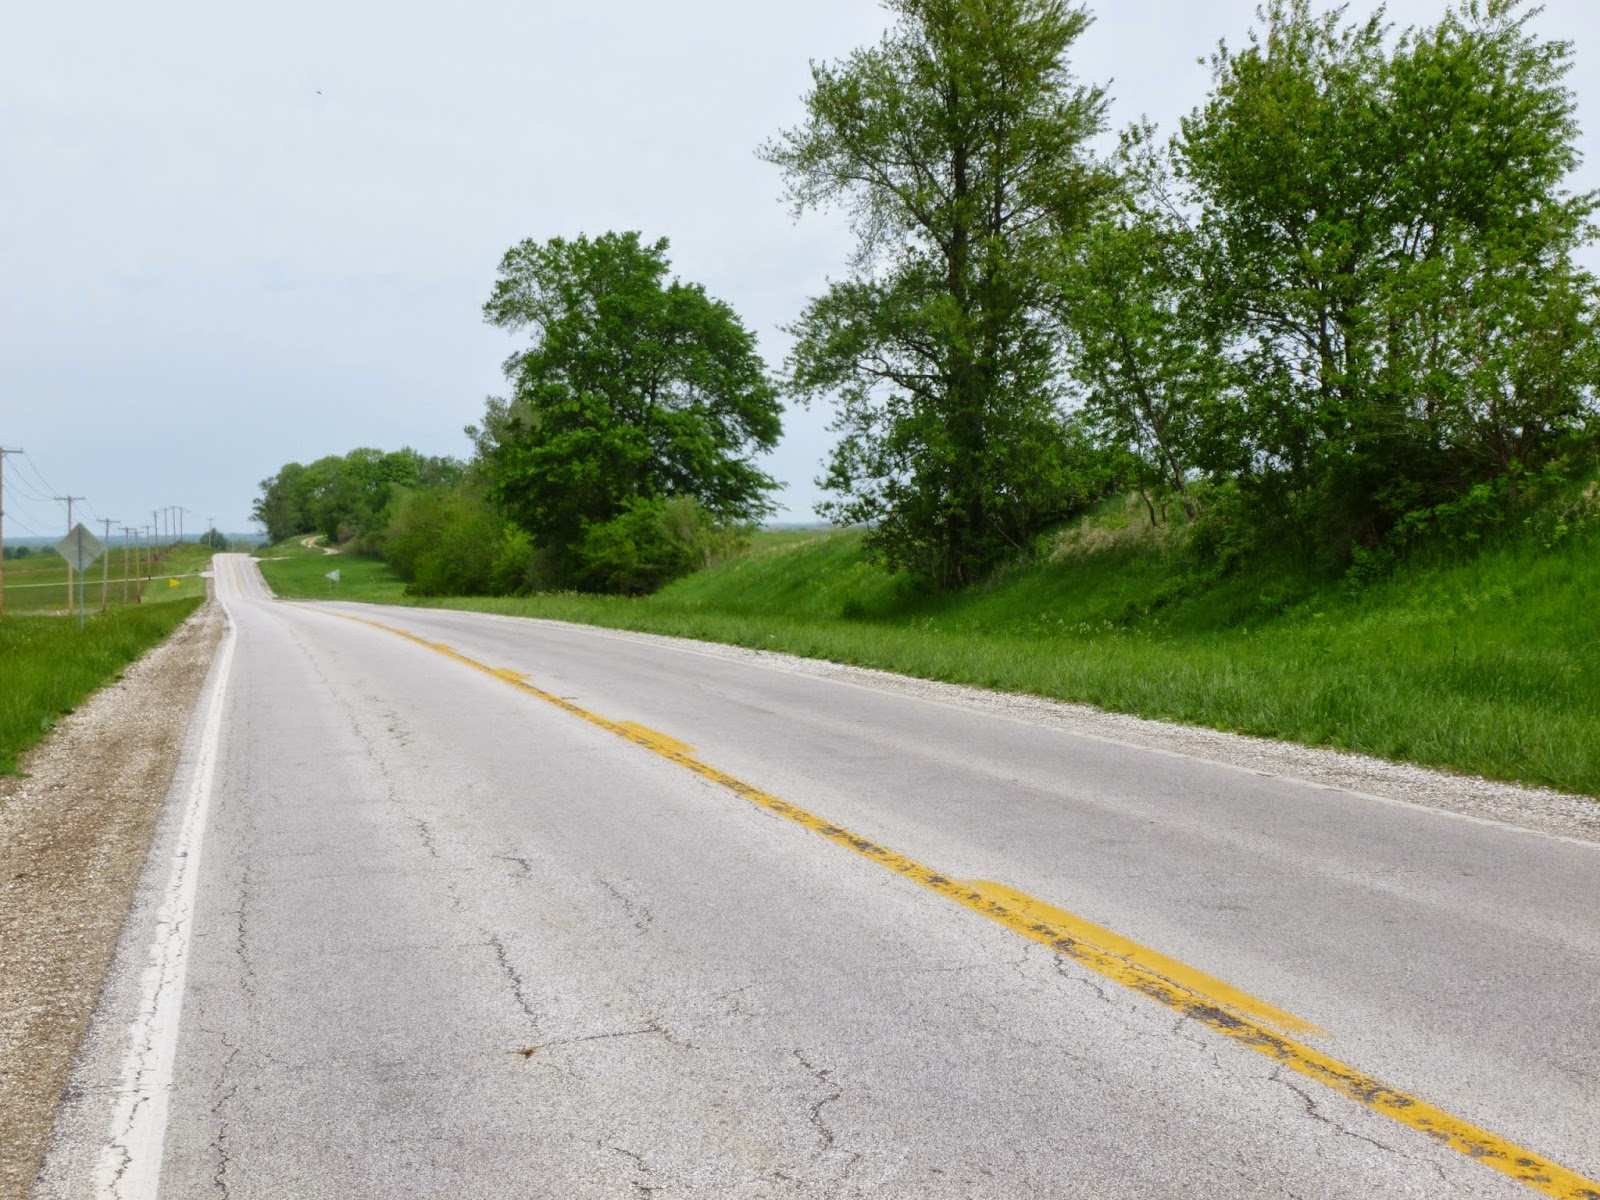 Illinois pike county griggsville - Illinois 107 From Griggsville To Perry Some 6 Miles Distant